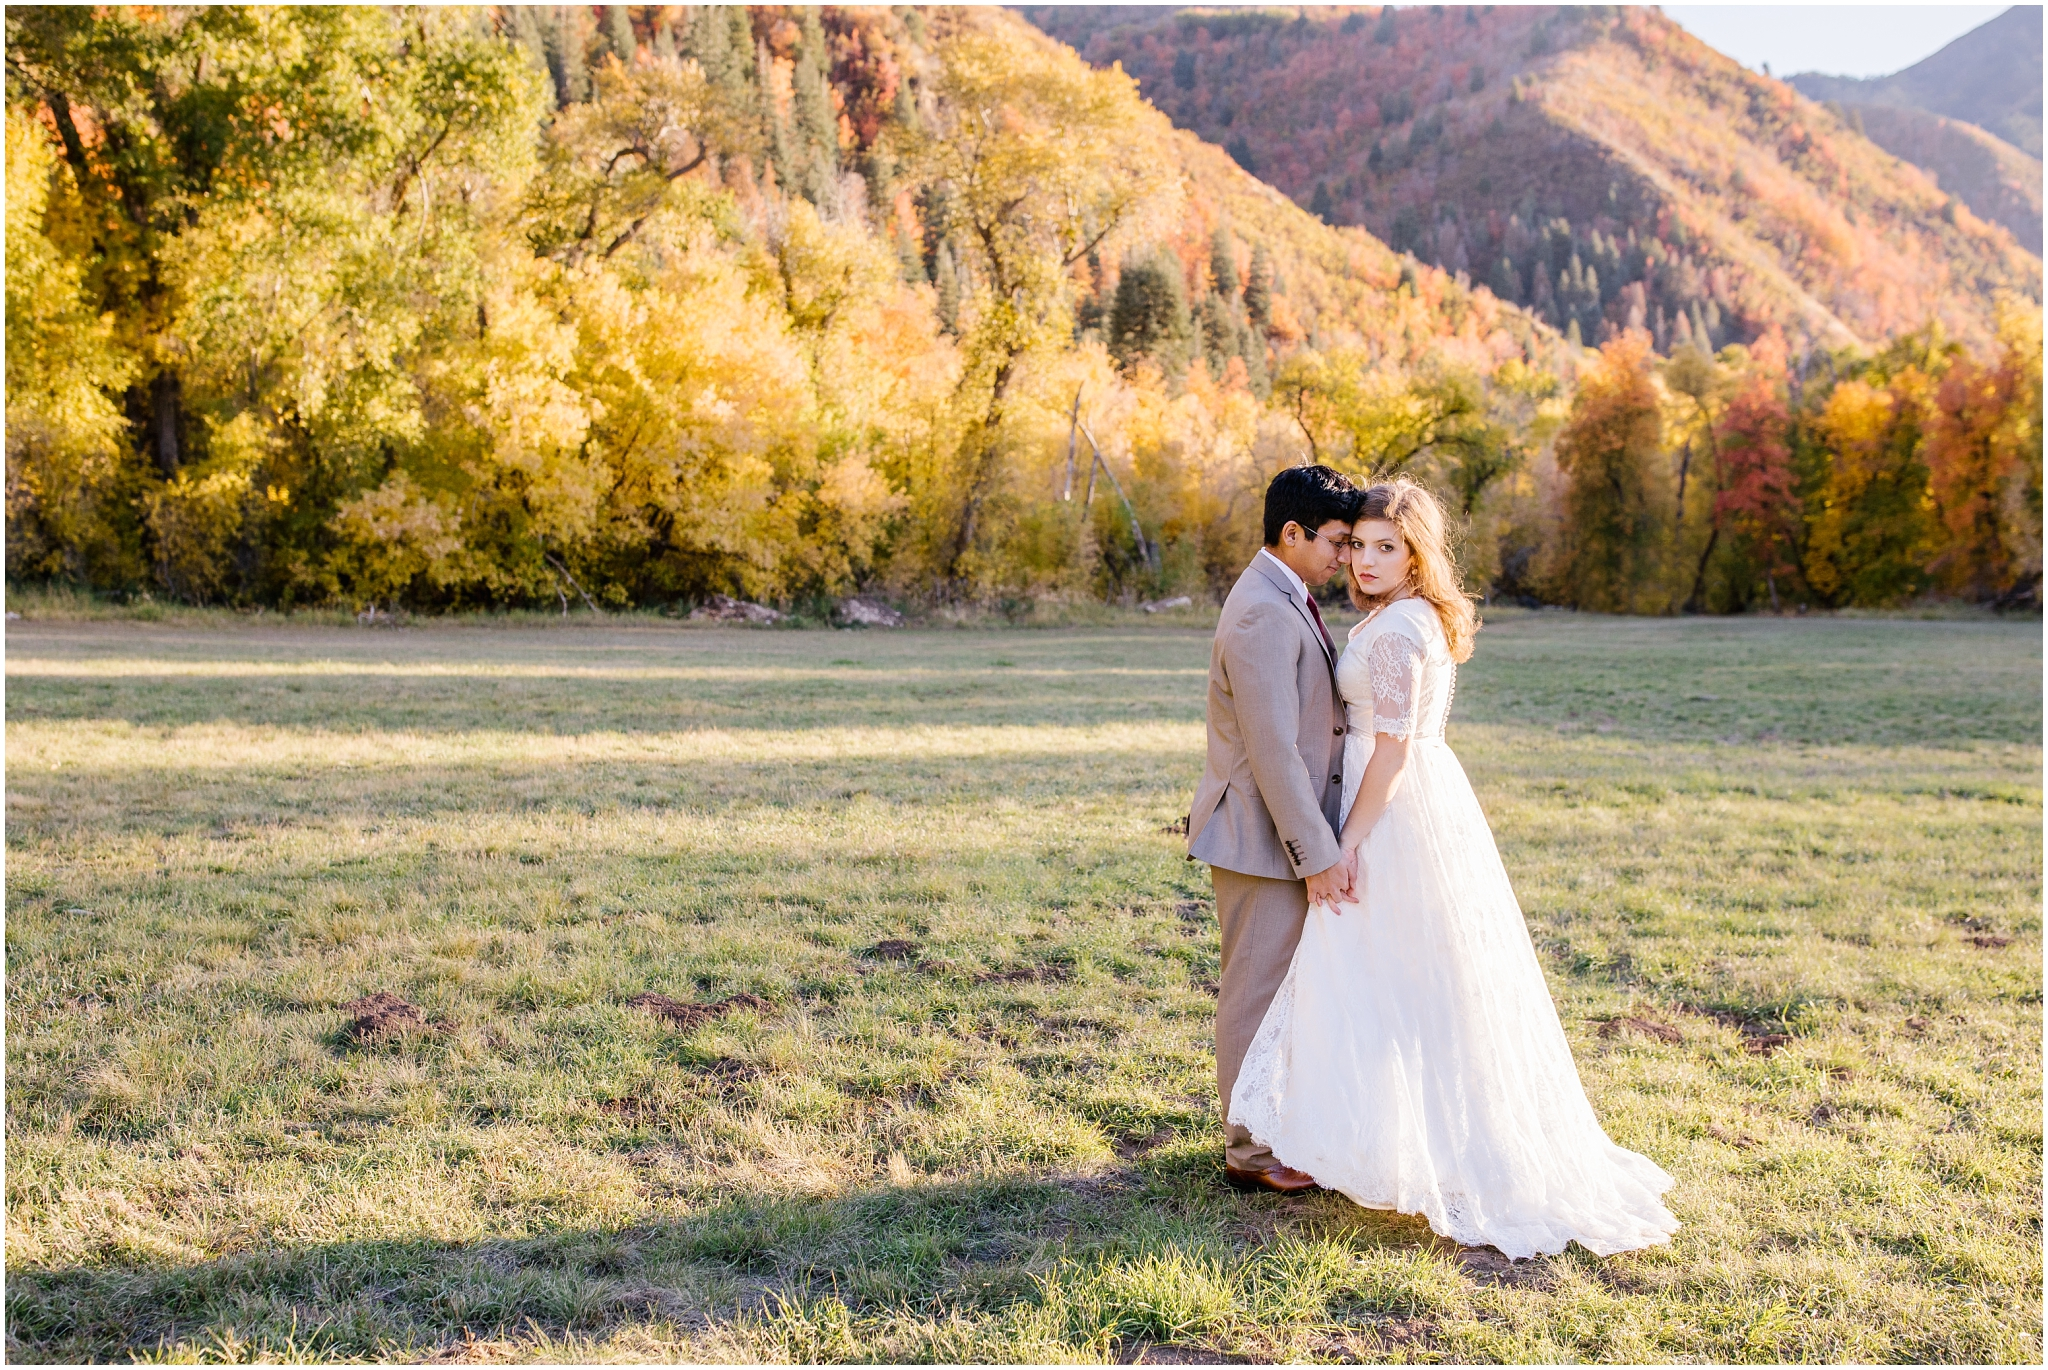 HE-BRIDALS-75_Lizzie-B-Imagery-Utah-Wedding-Photographer-Central-Utah-Park-City-Salt-Lake-City-Hobble-Creek-Canyon-Springville.jpg